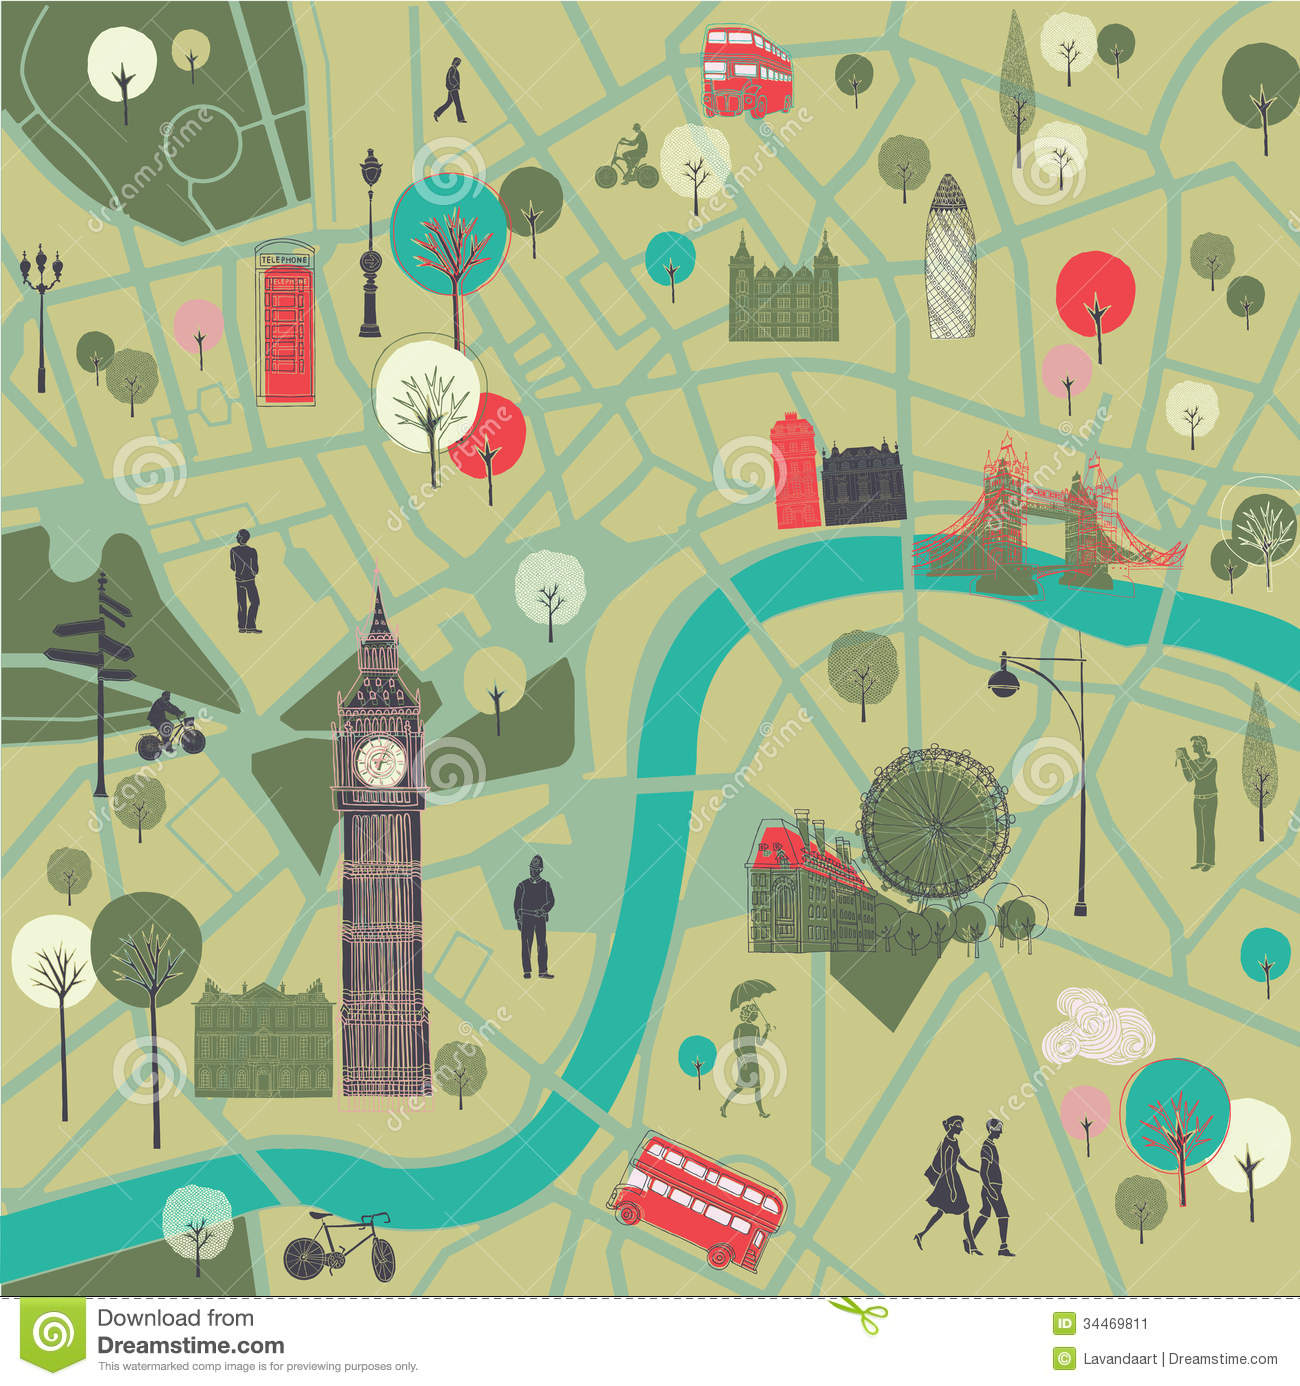 Map Of London Landmarks London Map London Map Tourist – London Map Of Tourist Attractions